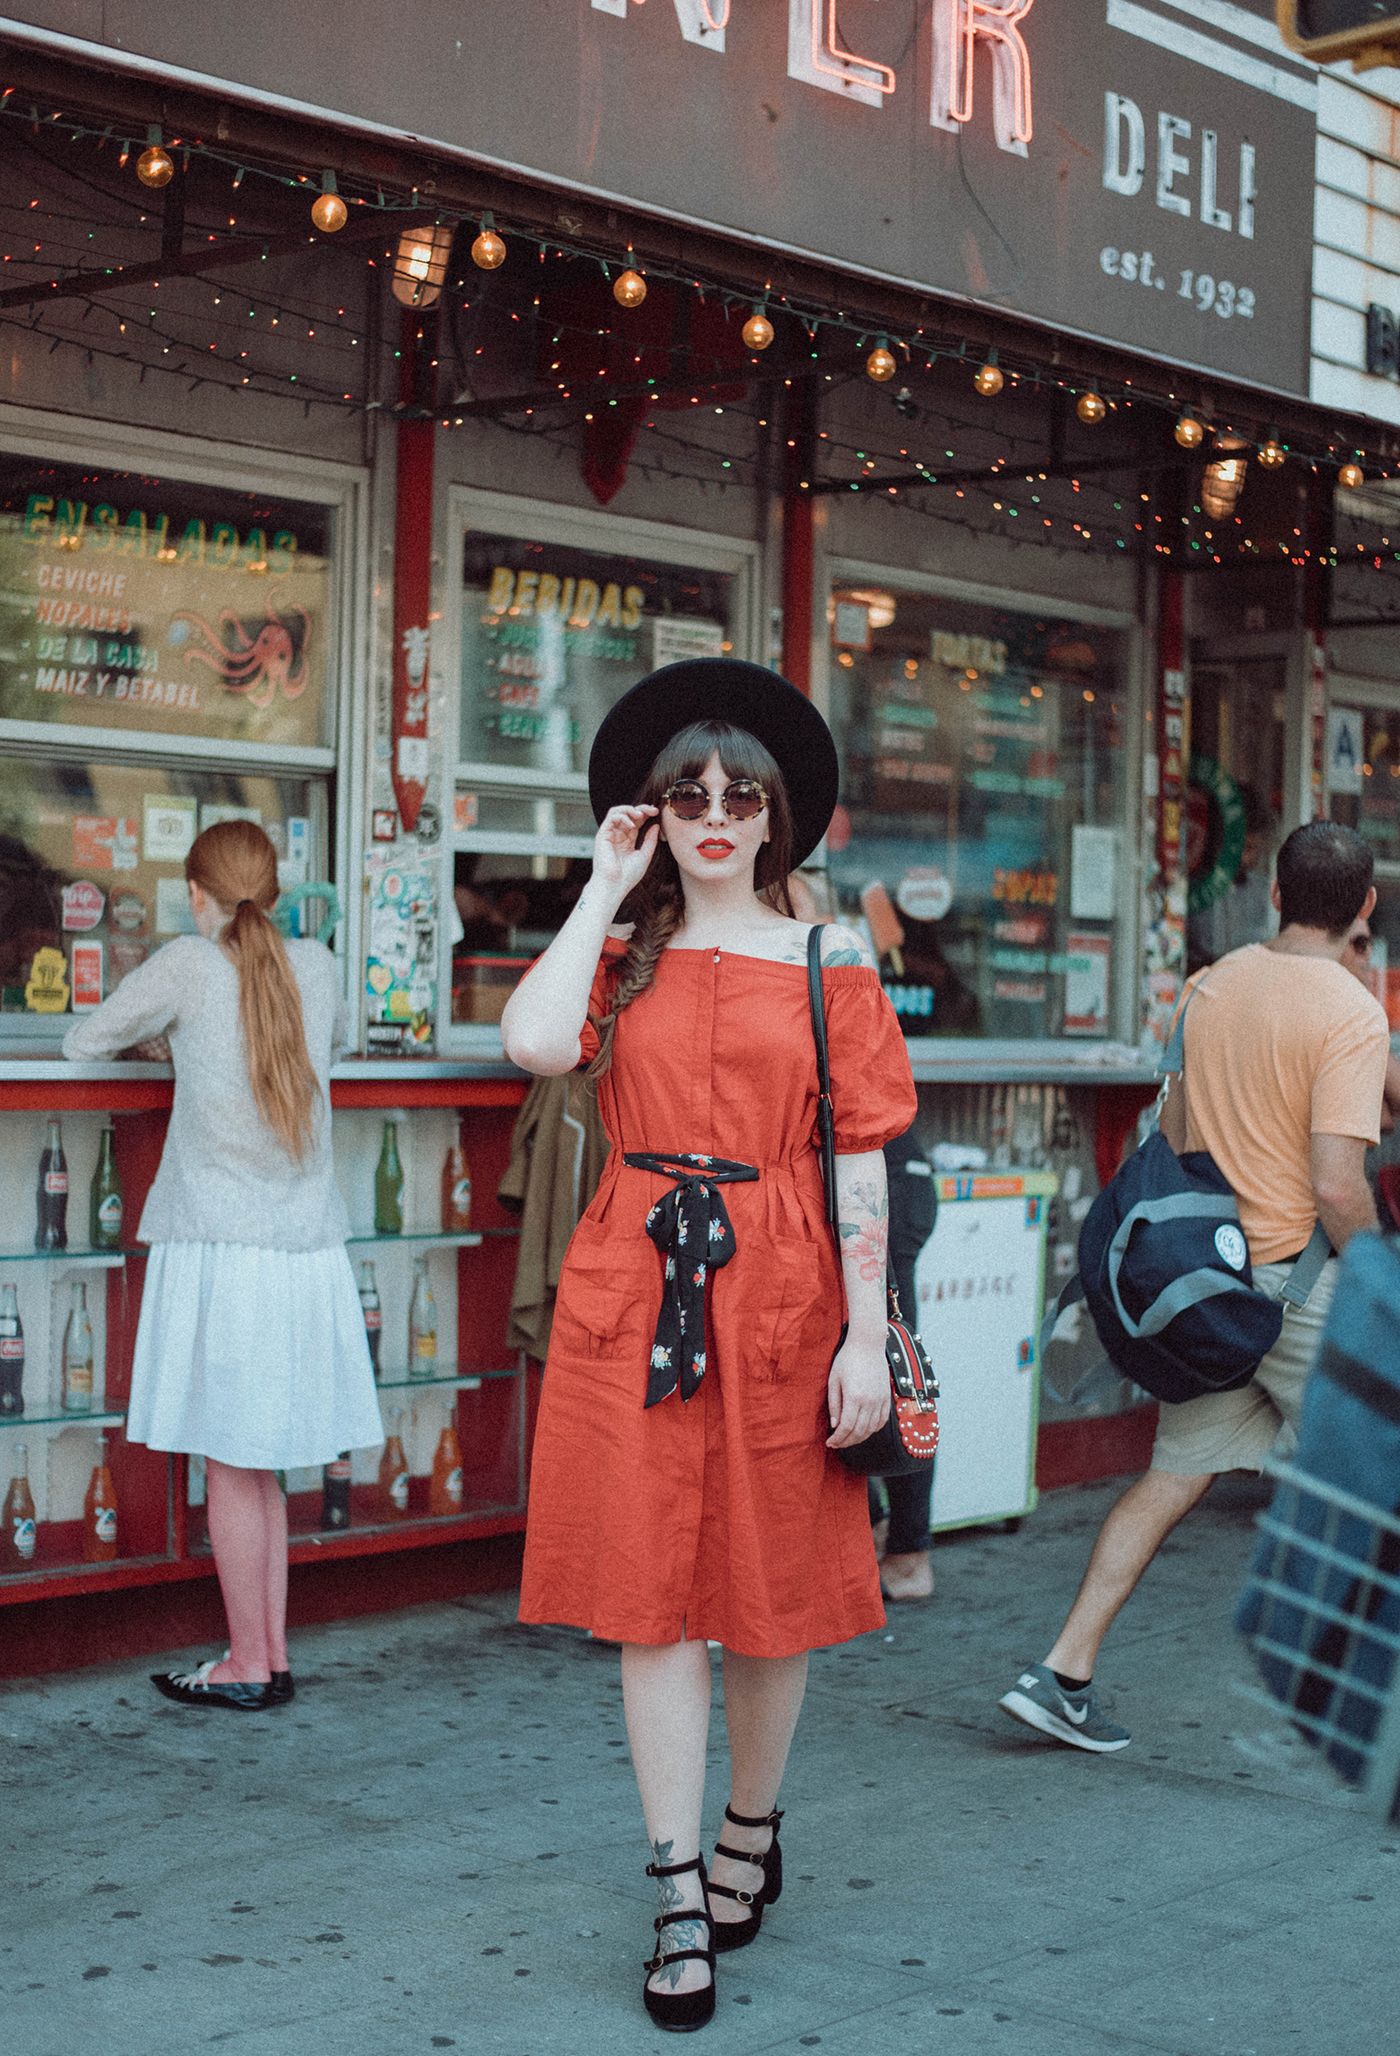 d.ra red linen dress on keiko lynn